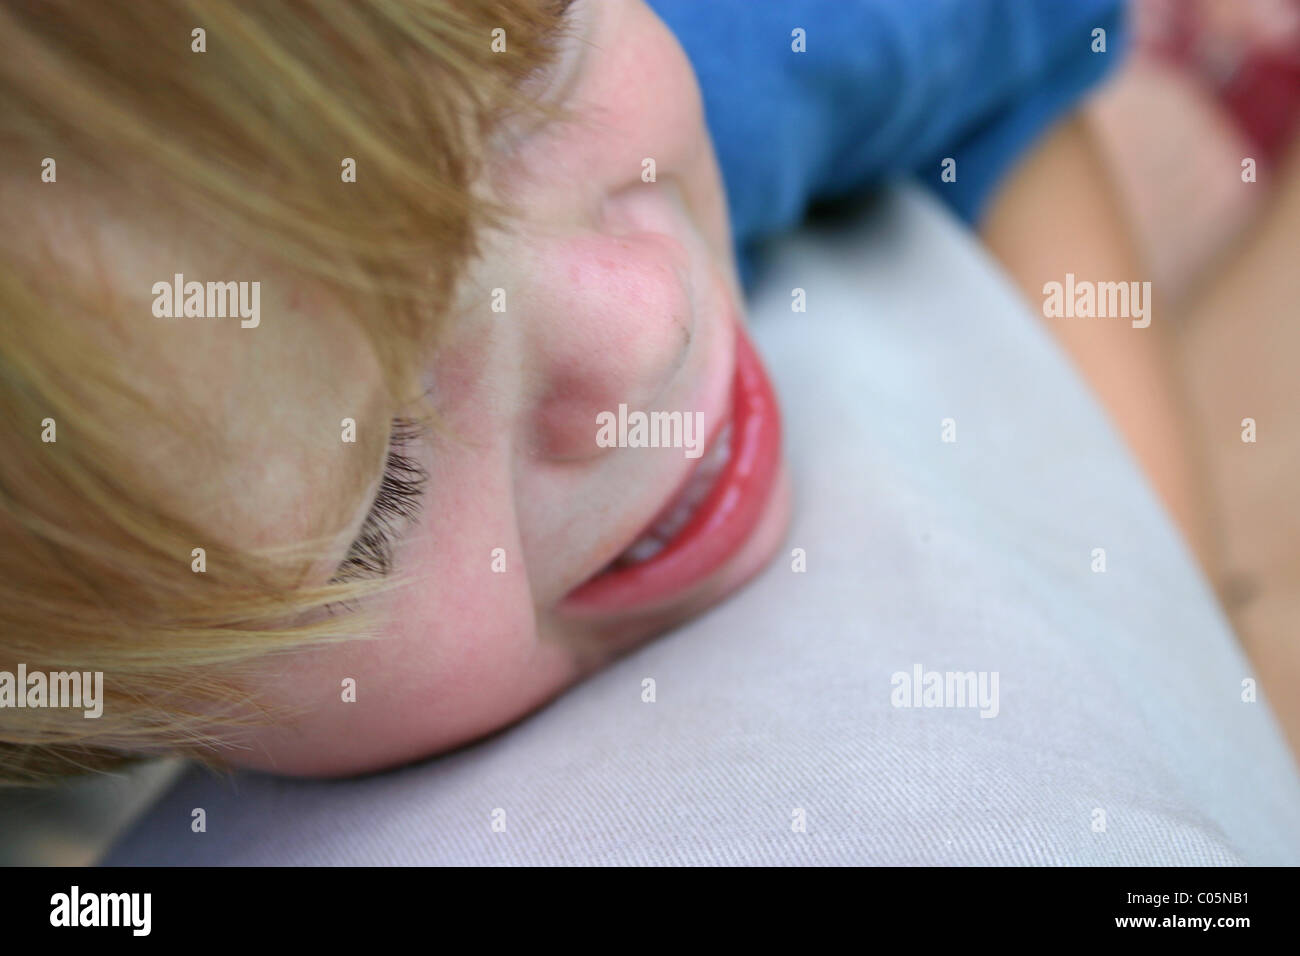 Two year old child clinging to parent, crying.  Parent's perspective, high angle view. - Stock Image